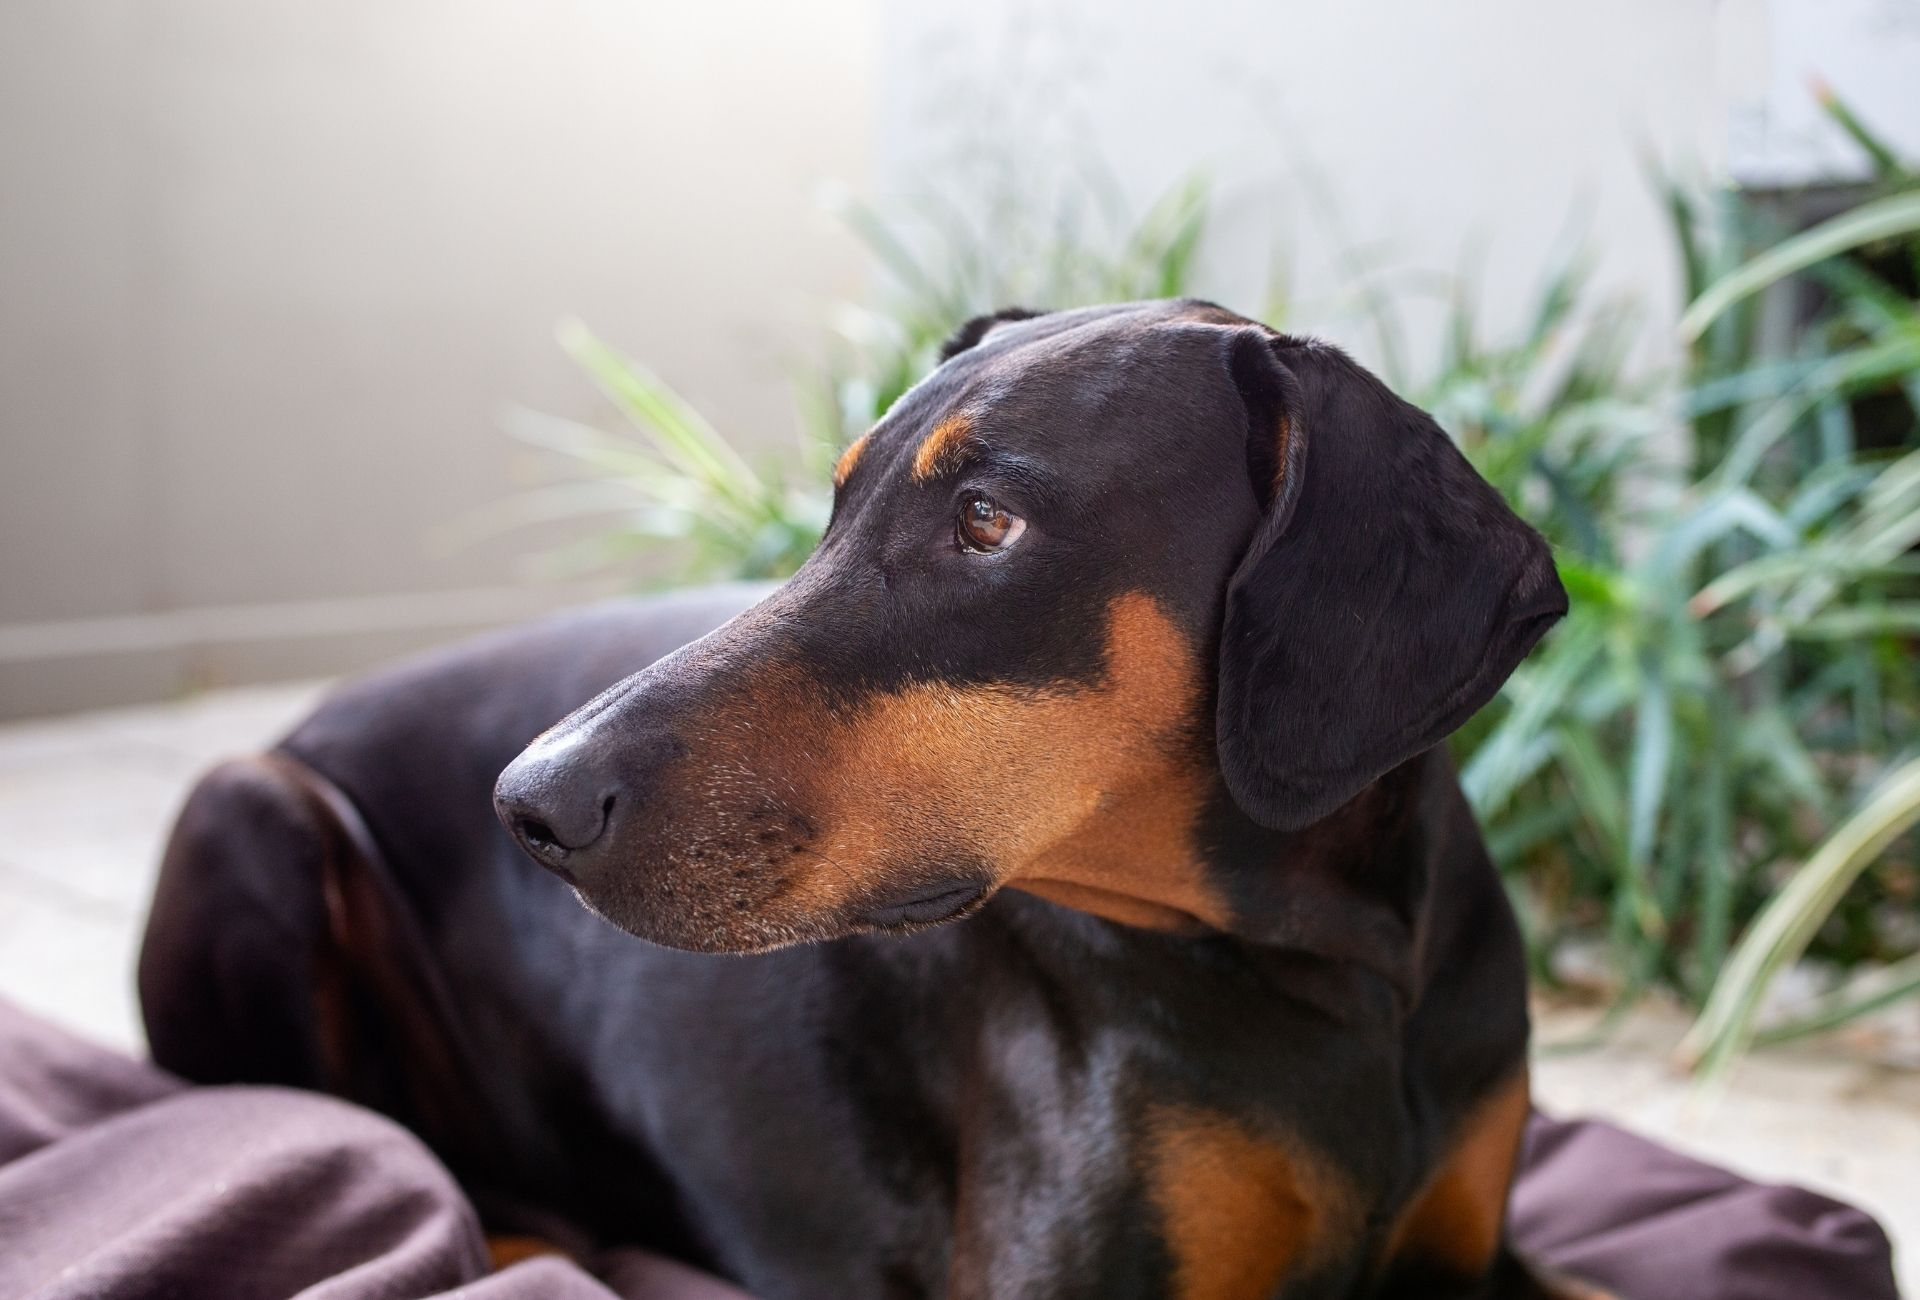 Floppy-eared Doberman looking to the side with plants in the background.